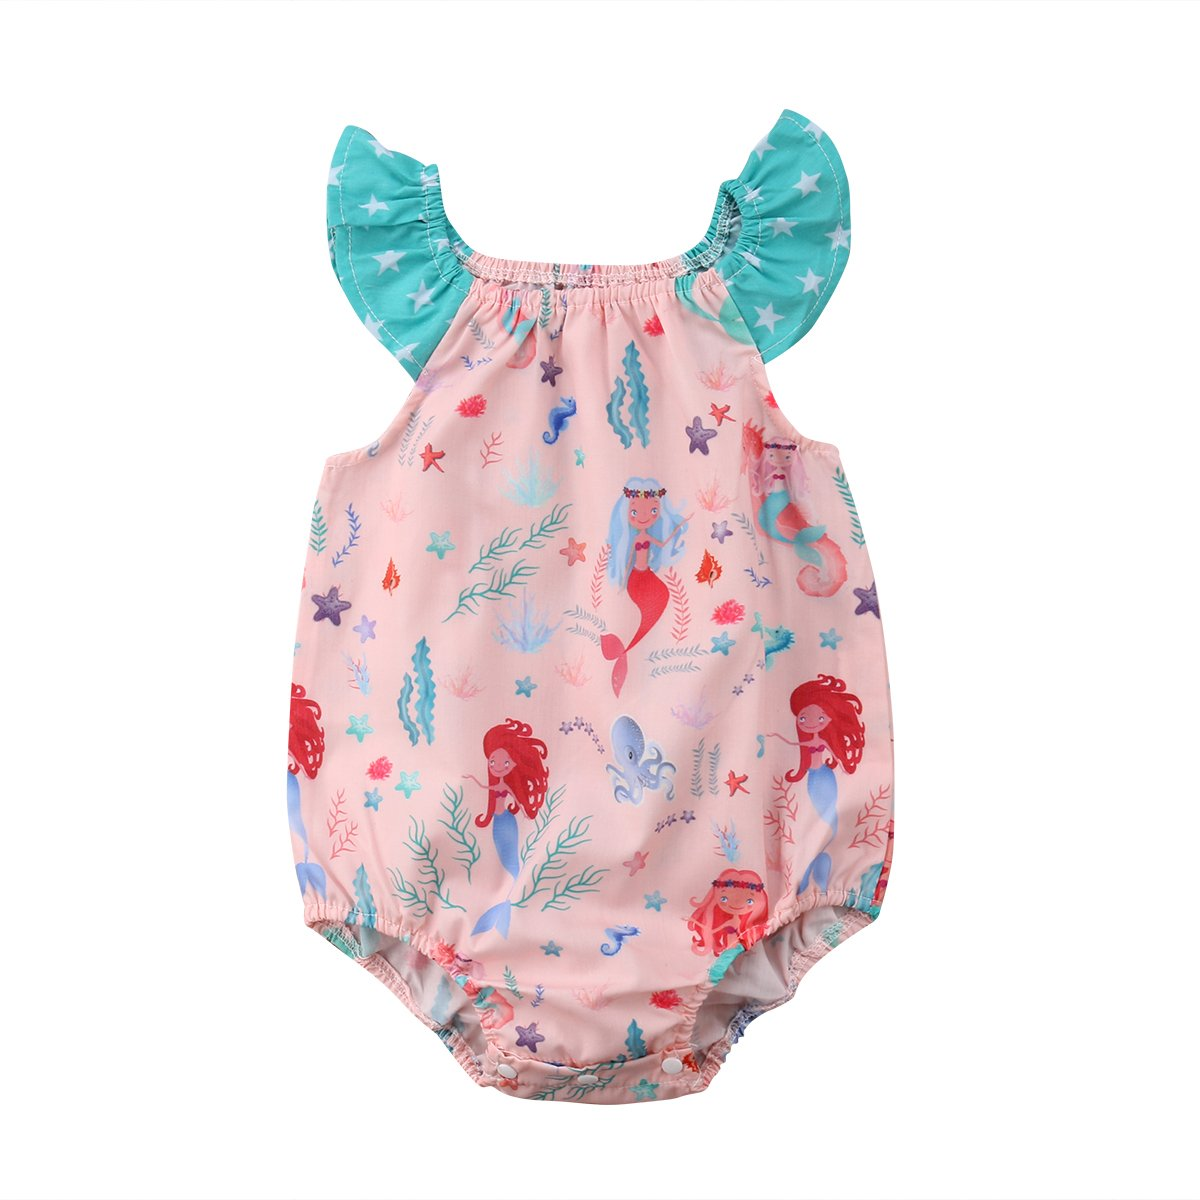 35559c96d06 Amazon.com  YAZAD Toddler Newborn Infant Baby Girl Mermaid Romper Ruffled Fly  Sleeve Bodysuit Jumpsuit Playsuit Summer Outfit  Clothing